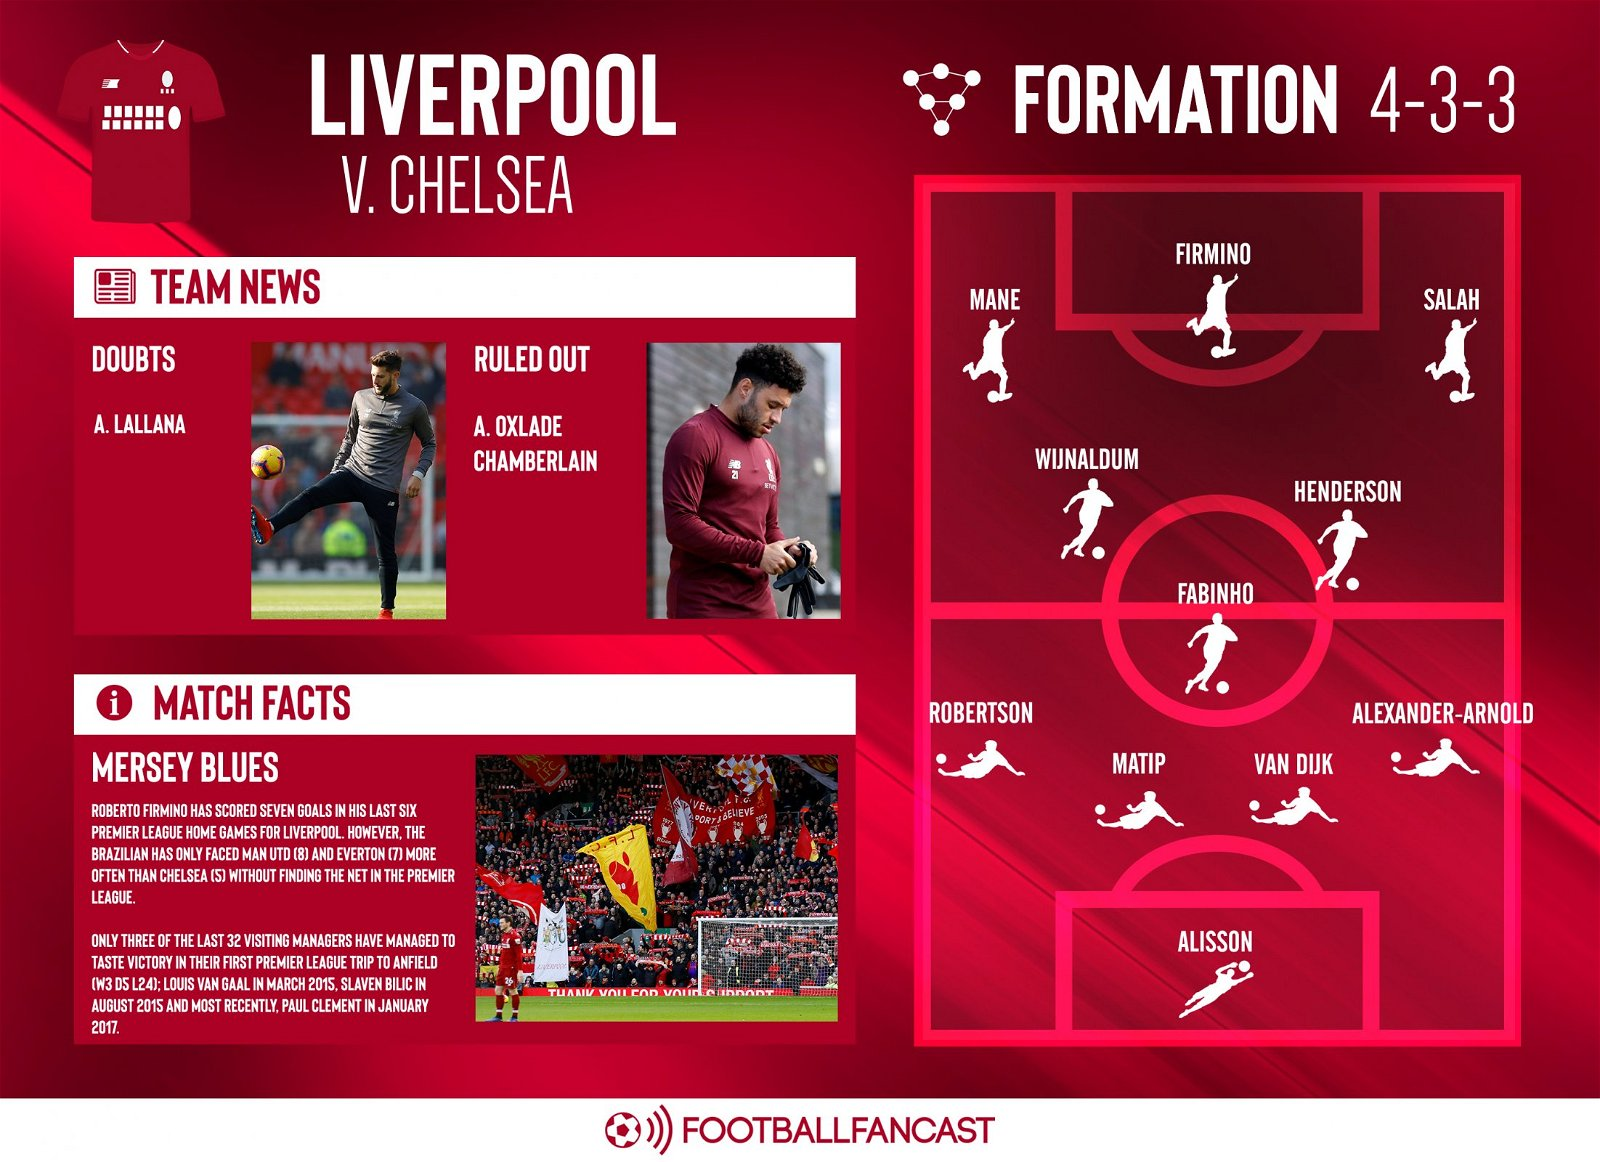 liverpool team news for chelsea game (1)